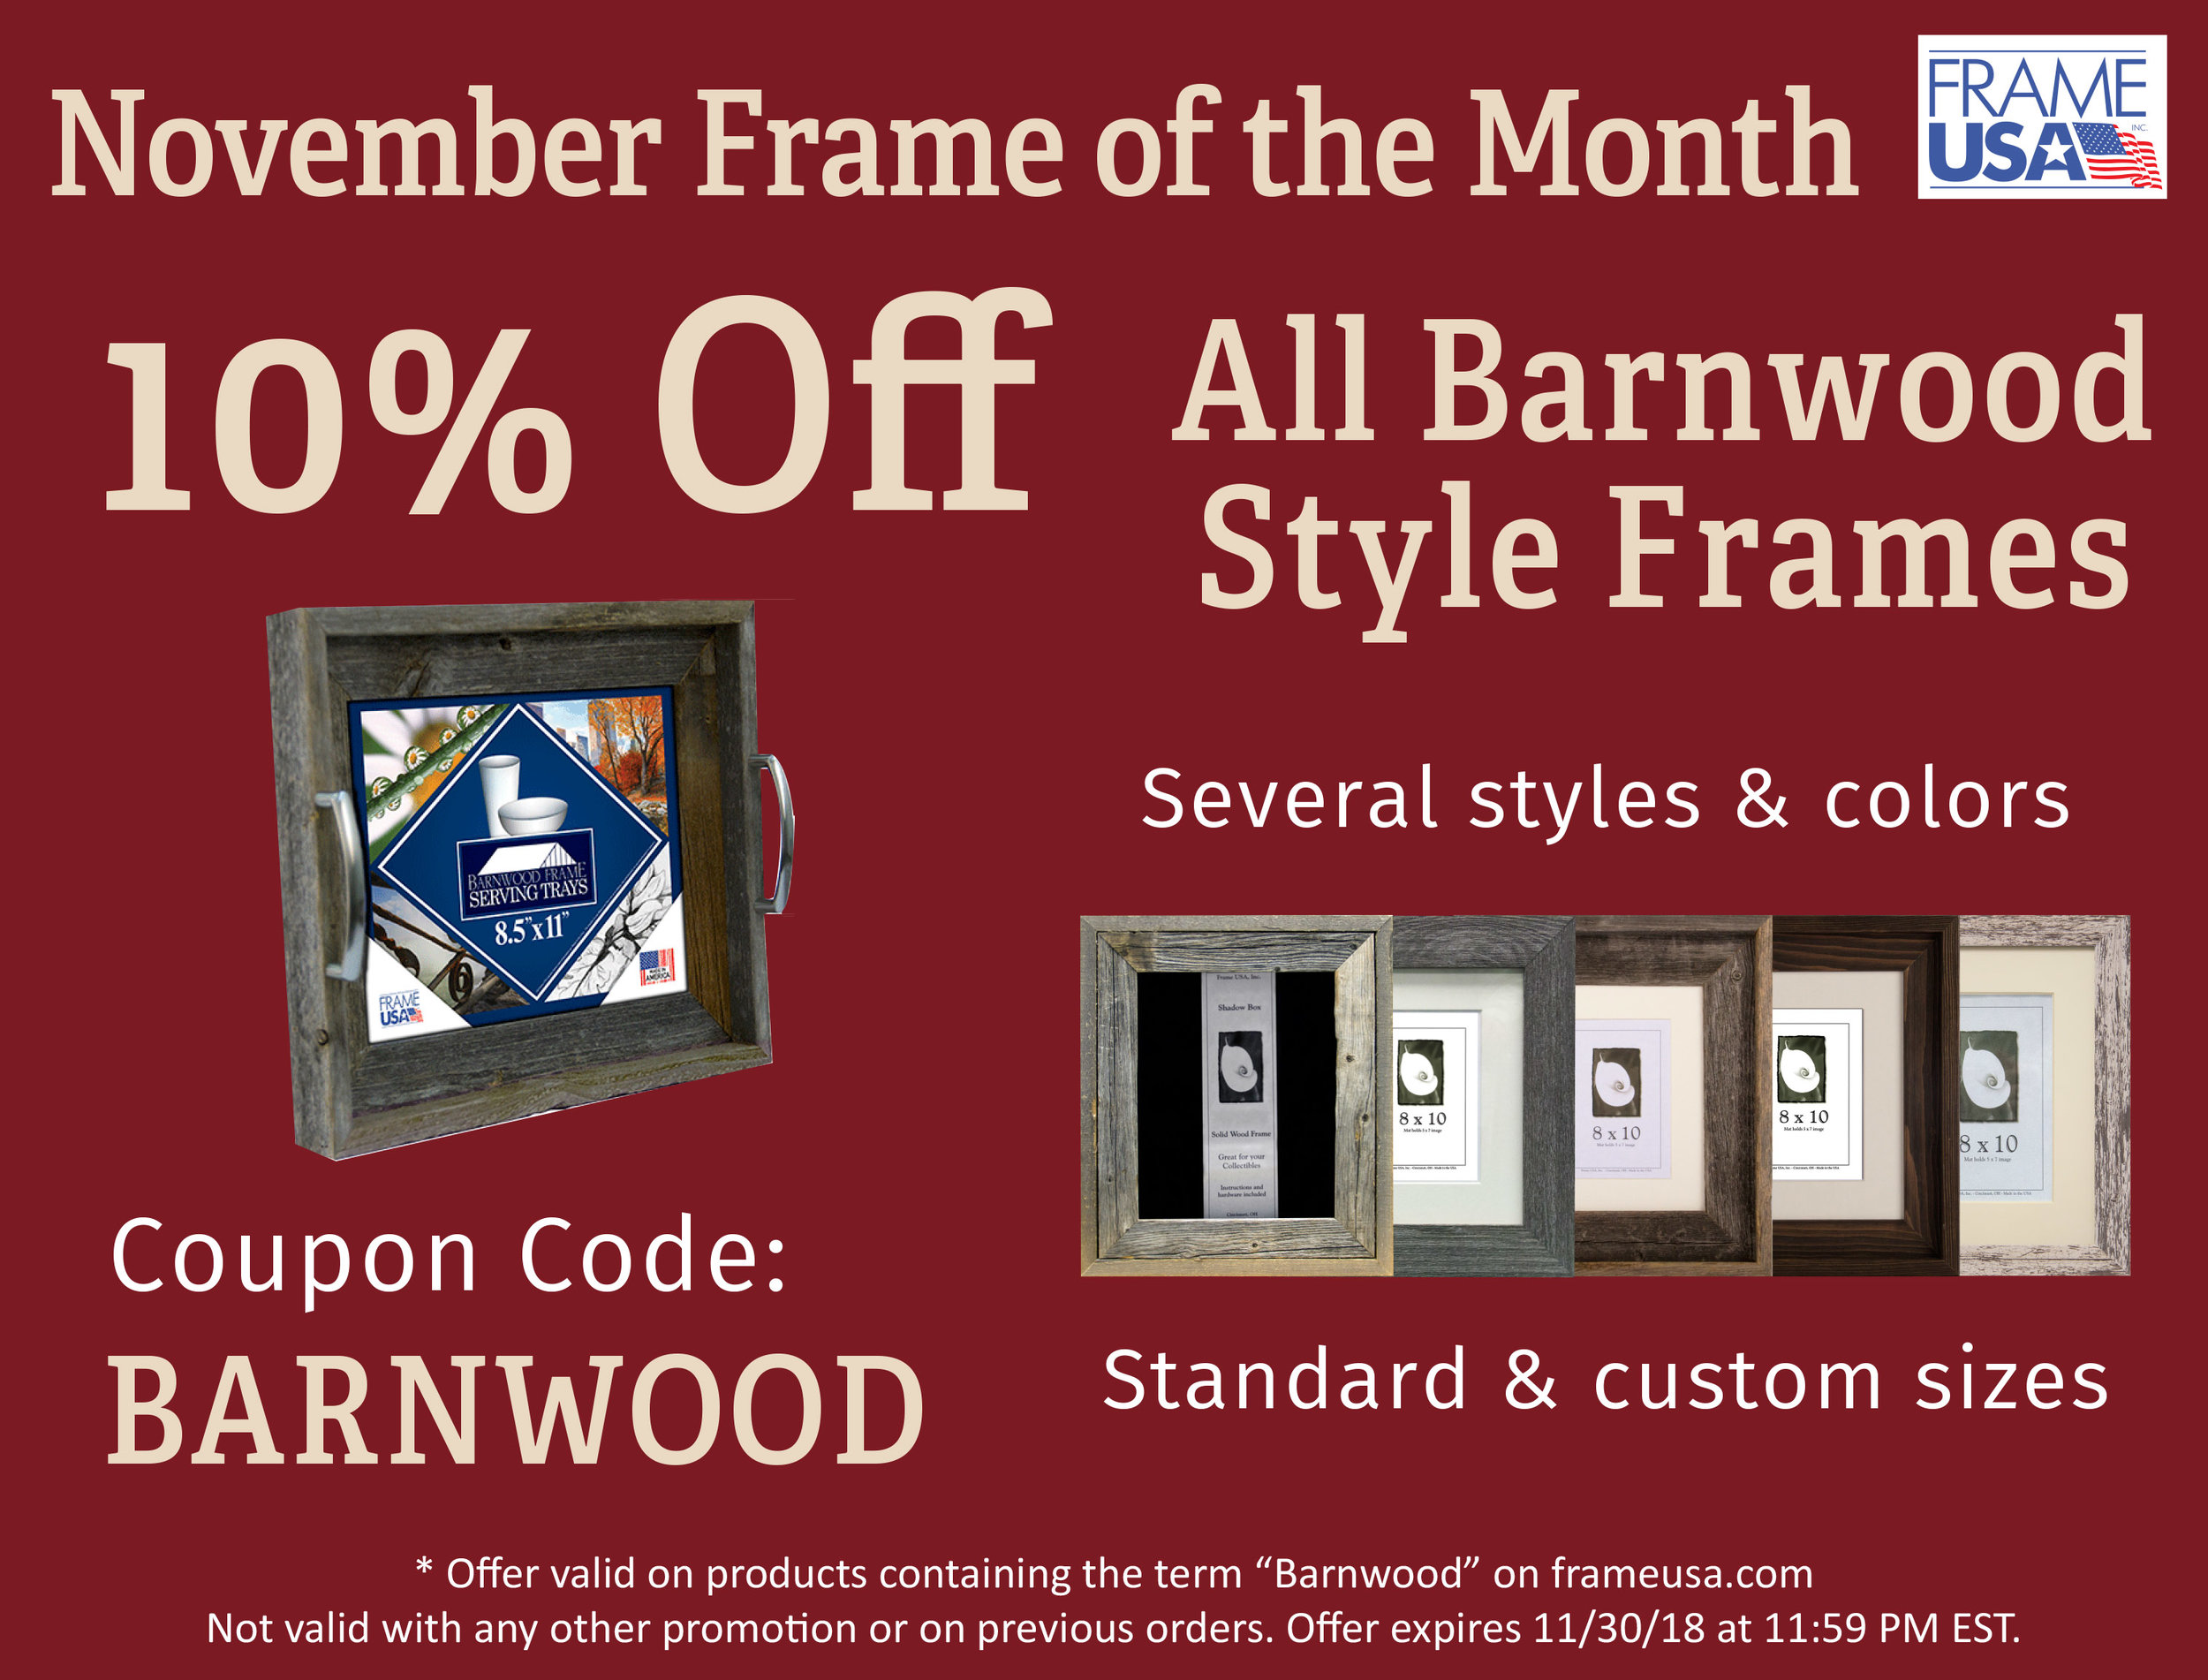 11-7-18 Nov Frame of the Month.jpg